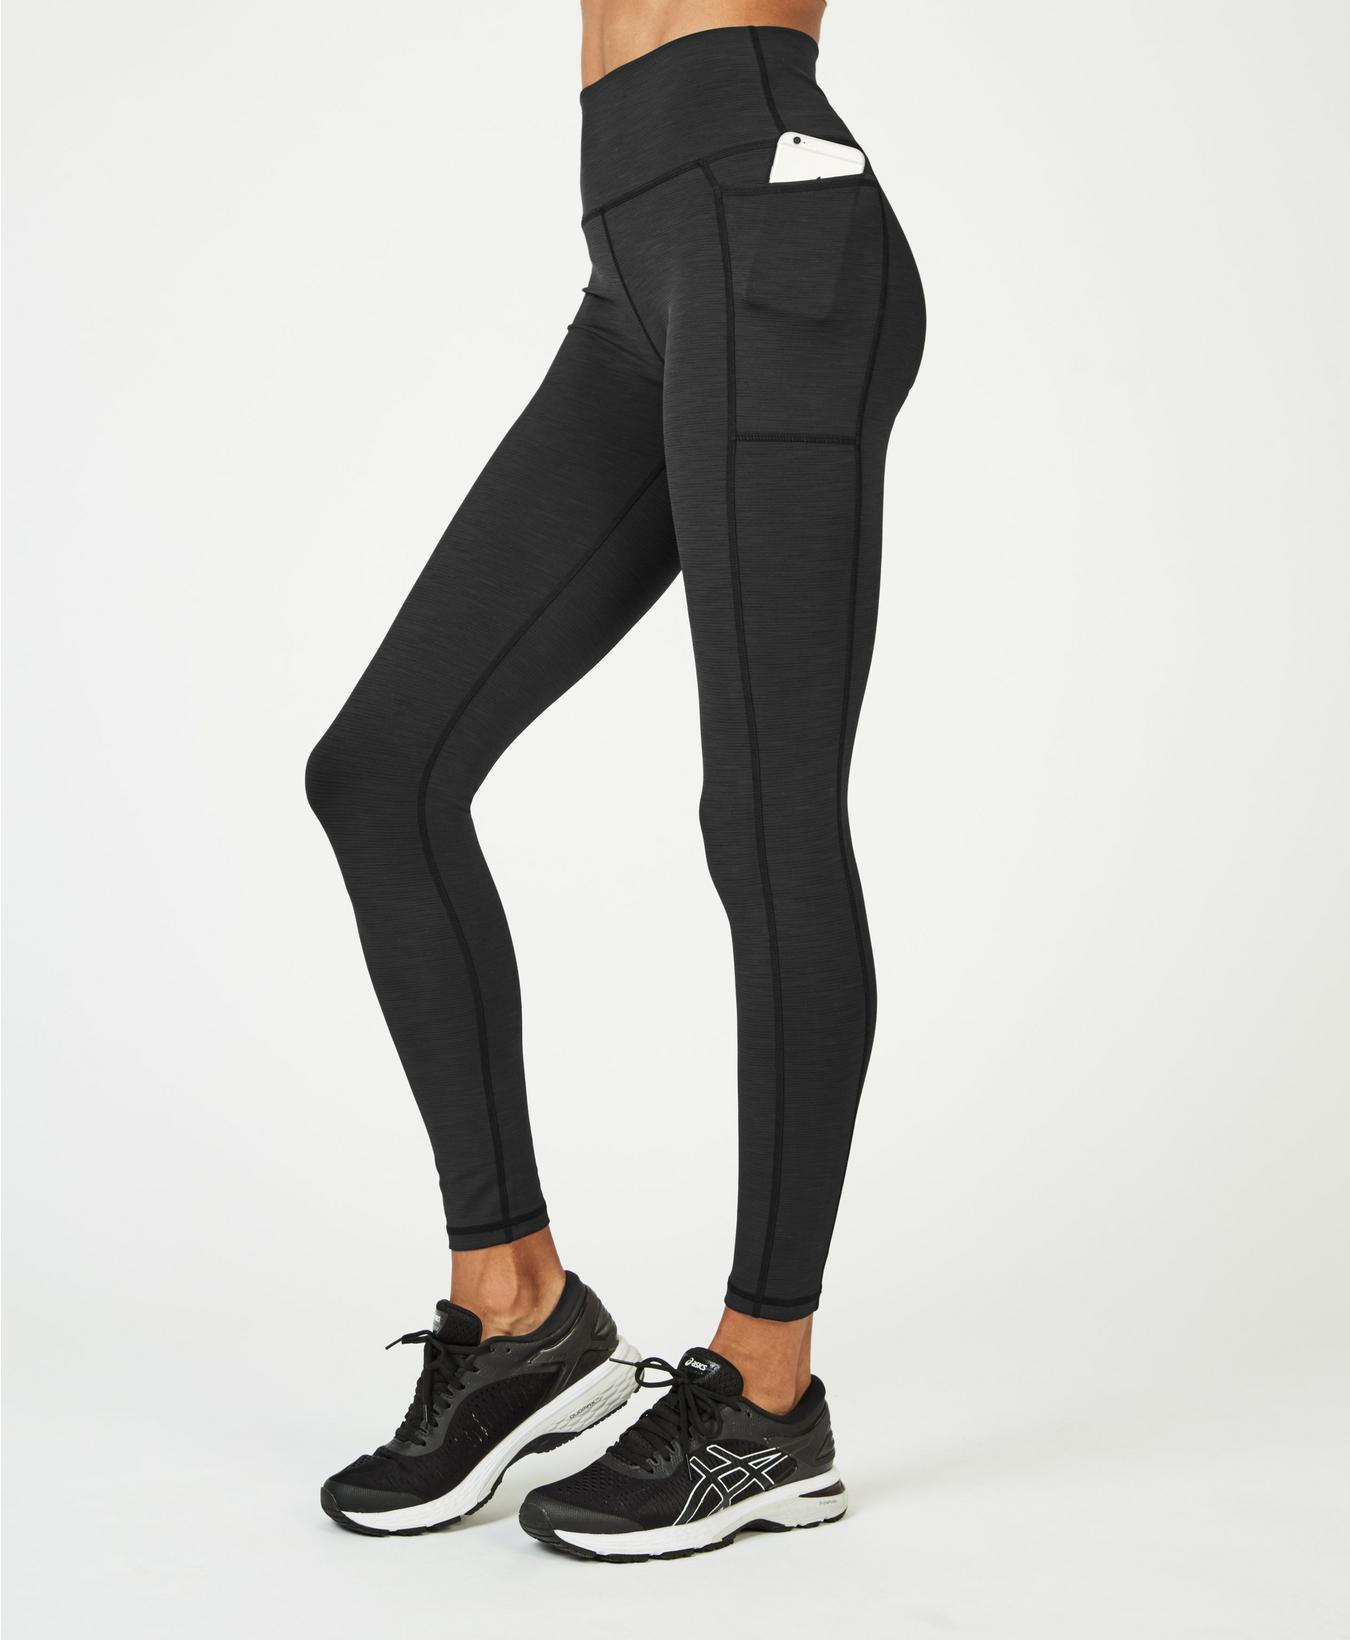 Sweaty Betty High Waisted Yoga Leggings